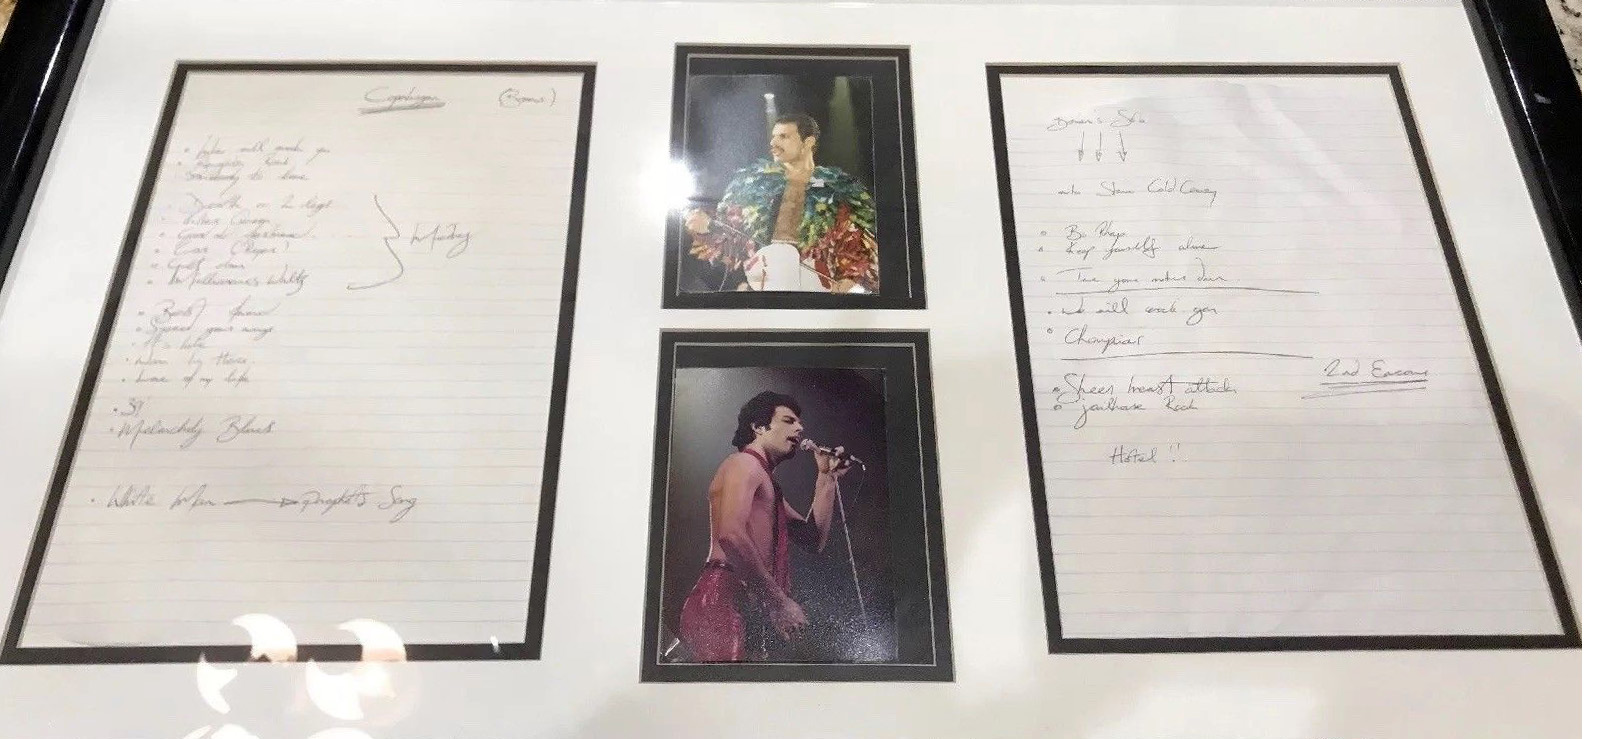 FAKE Queen setlist - fake Freddie's handwriting